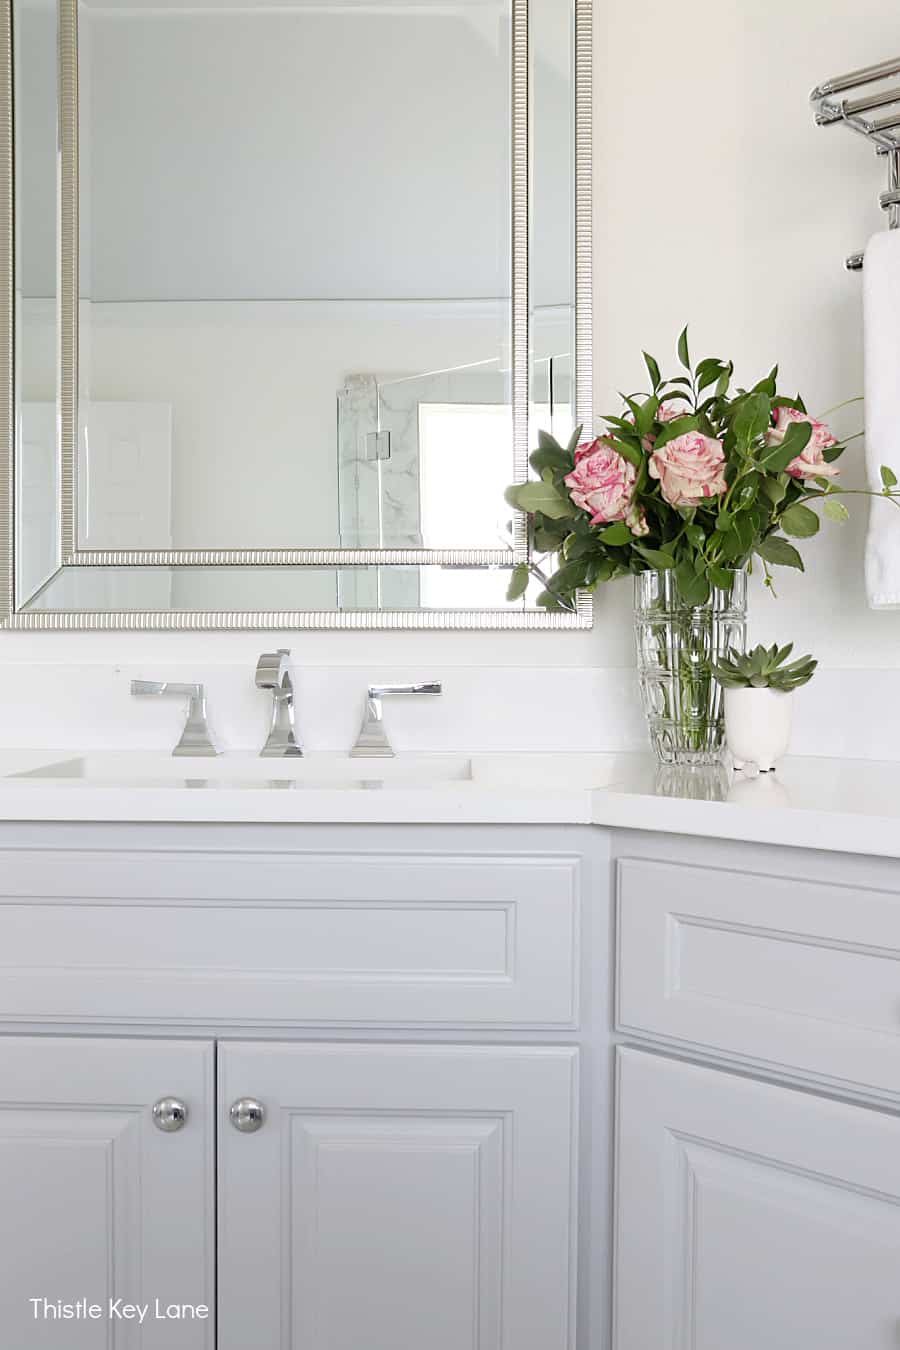 White quartz countertop, gray cabinets, pink rose arrangement. White And Gray Bathroom Makeover.